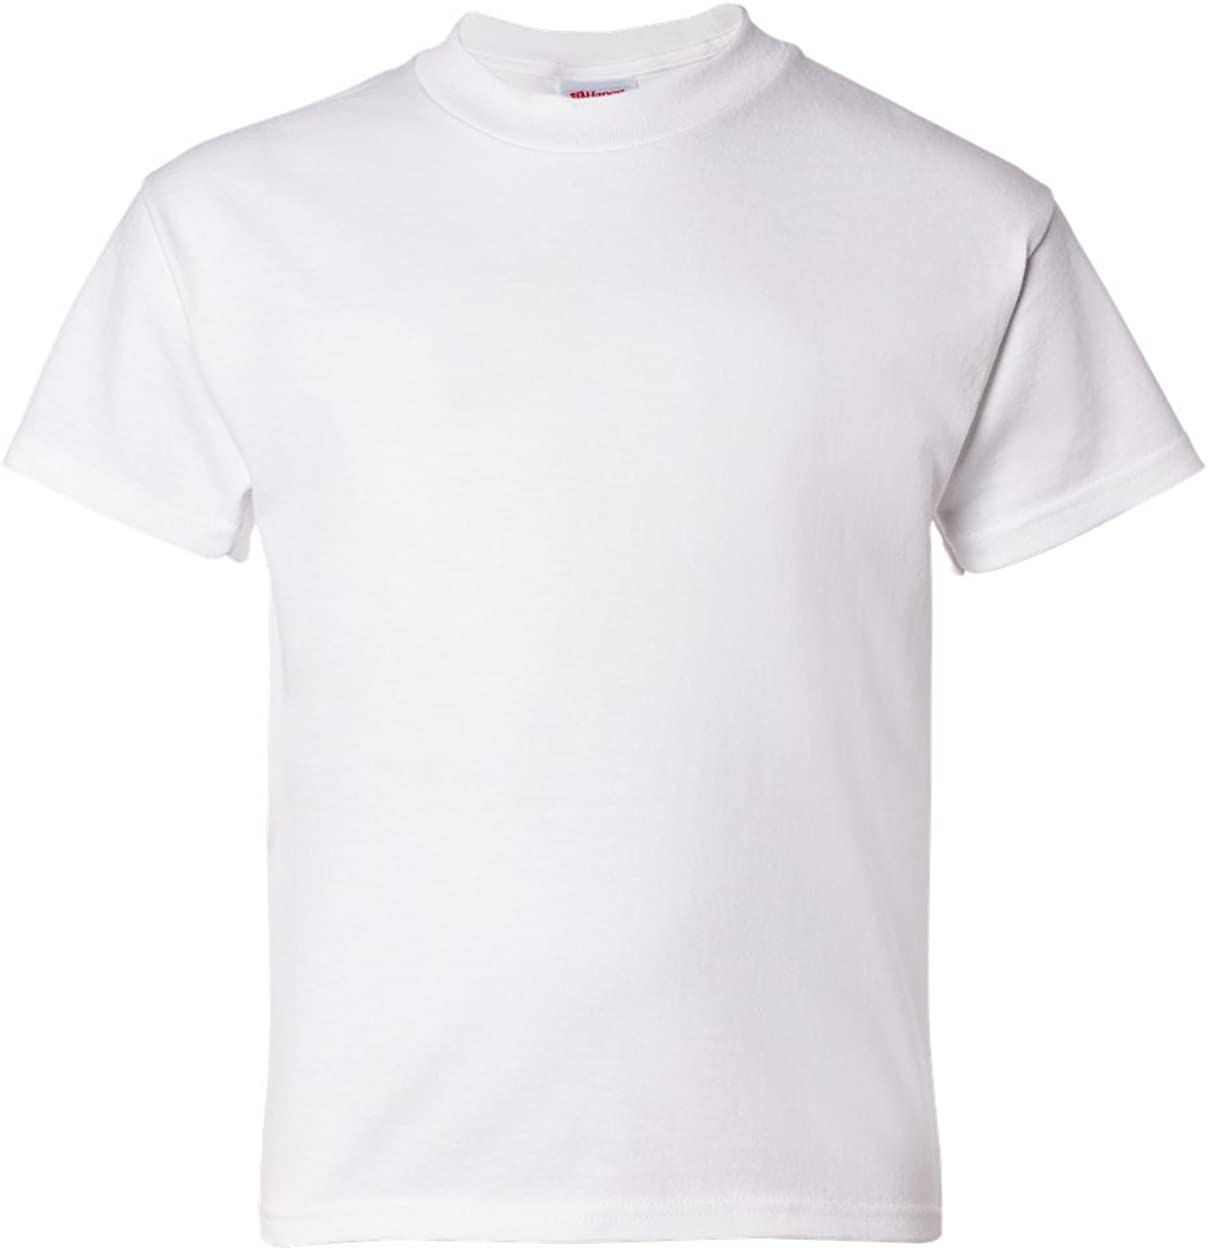 2-Pack Hanes ComfortSoft Youth Short Sleeve Tagless T-Shirt, White, XS (5)